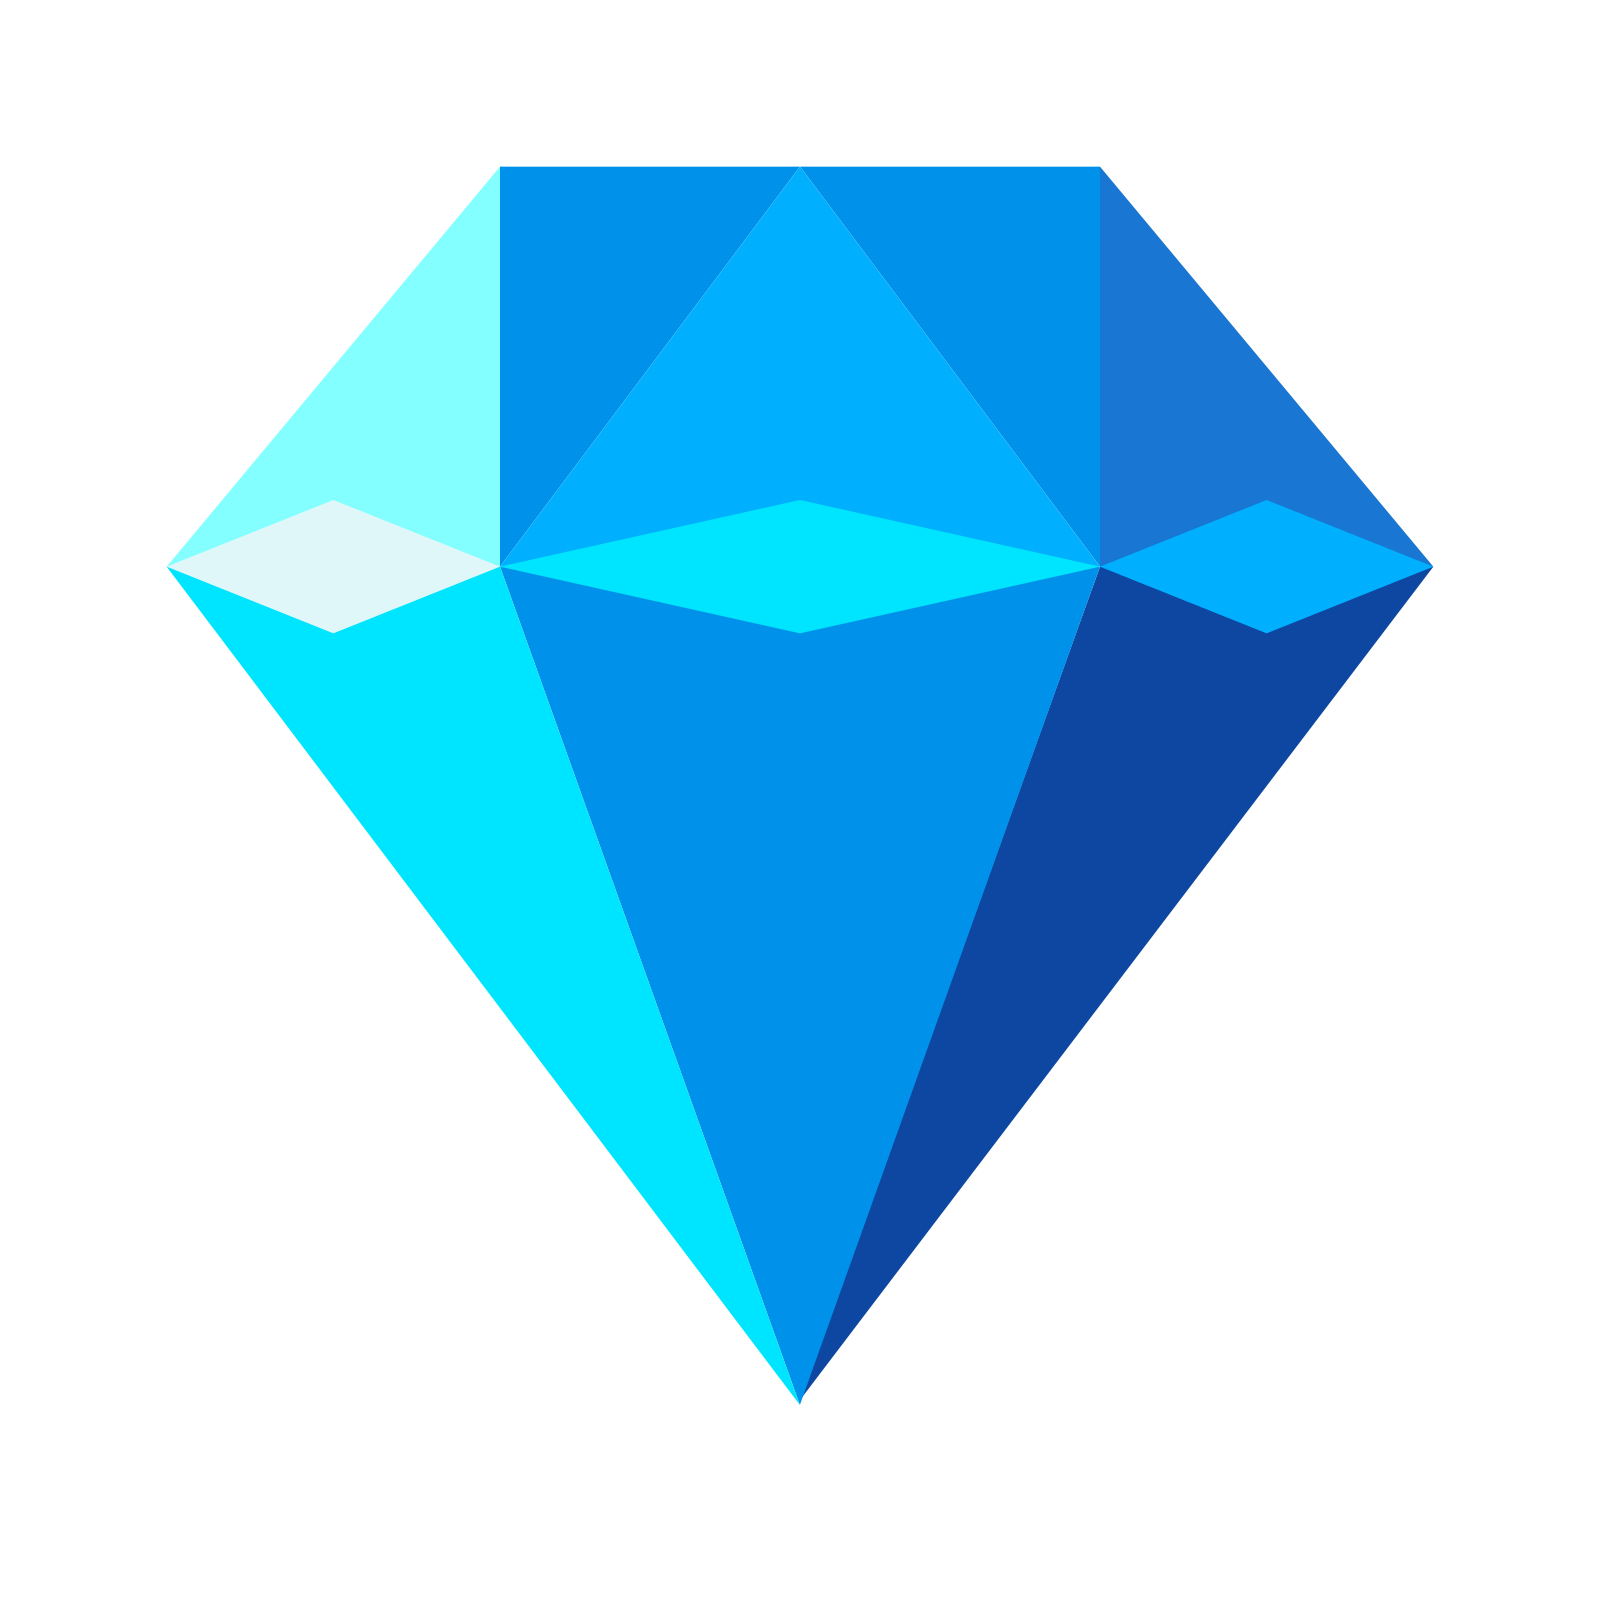 diamond icon download icons #13235